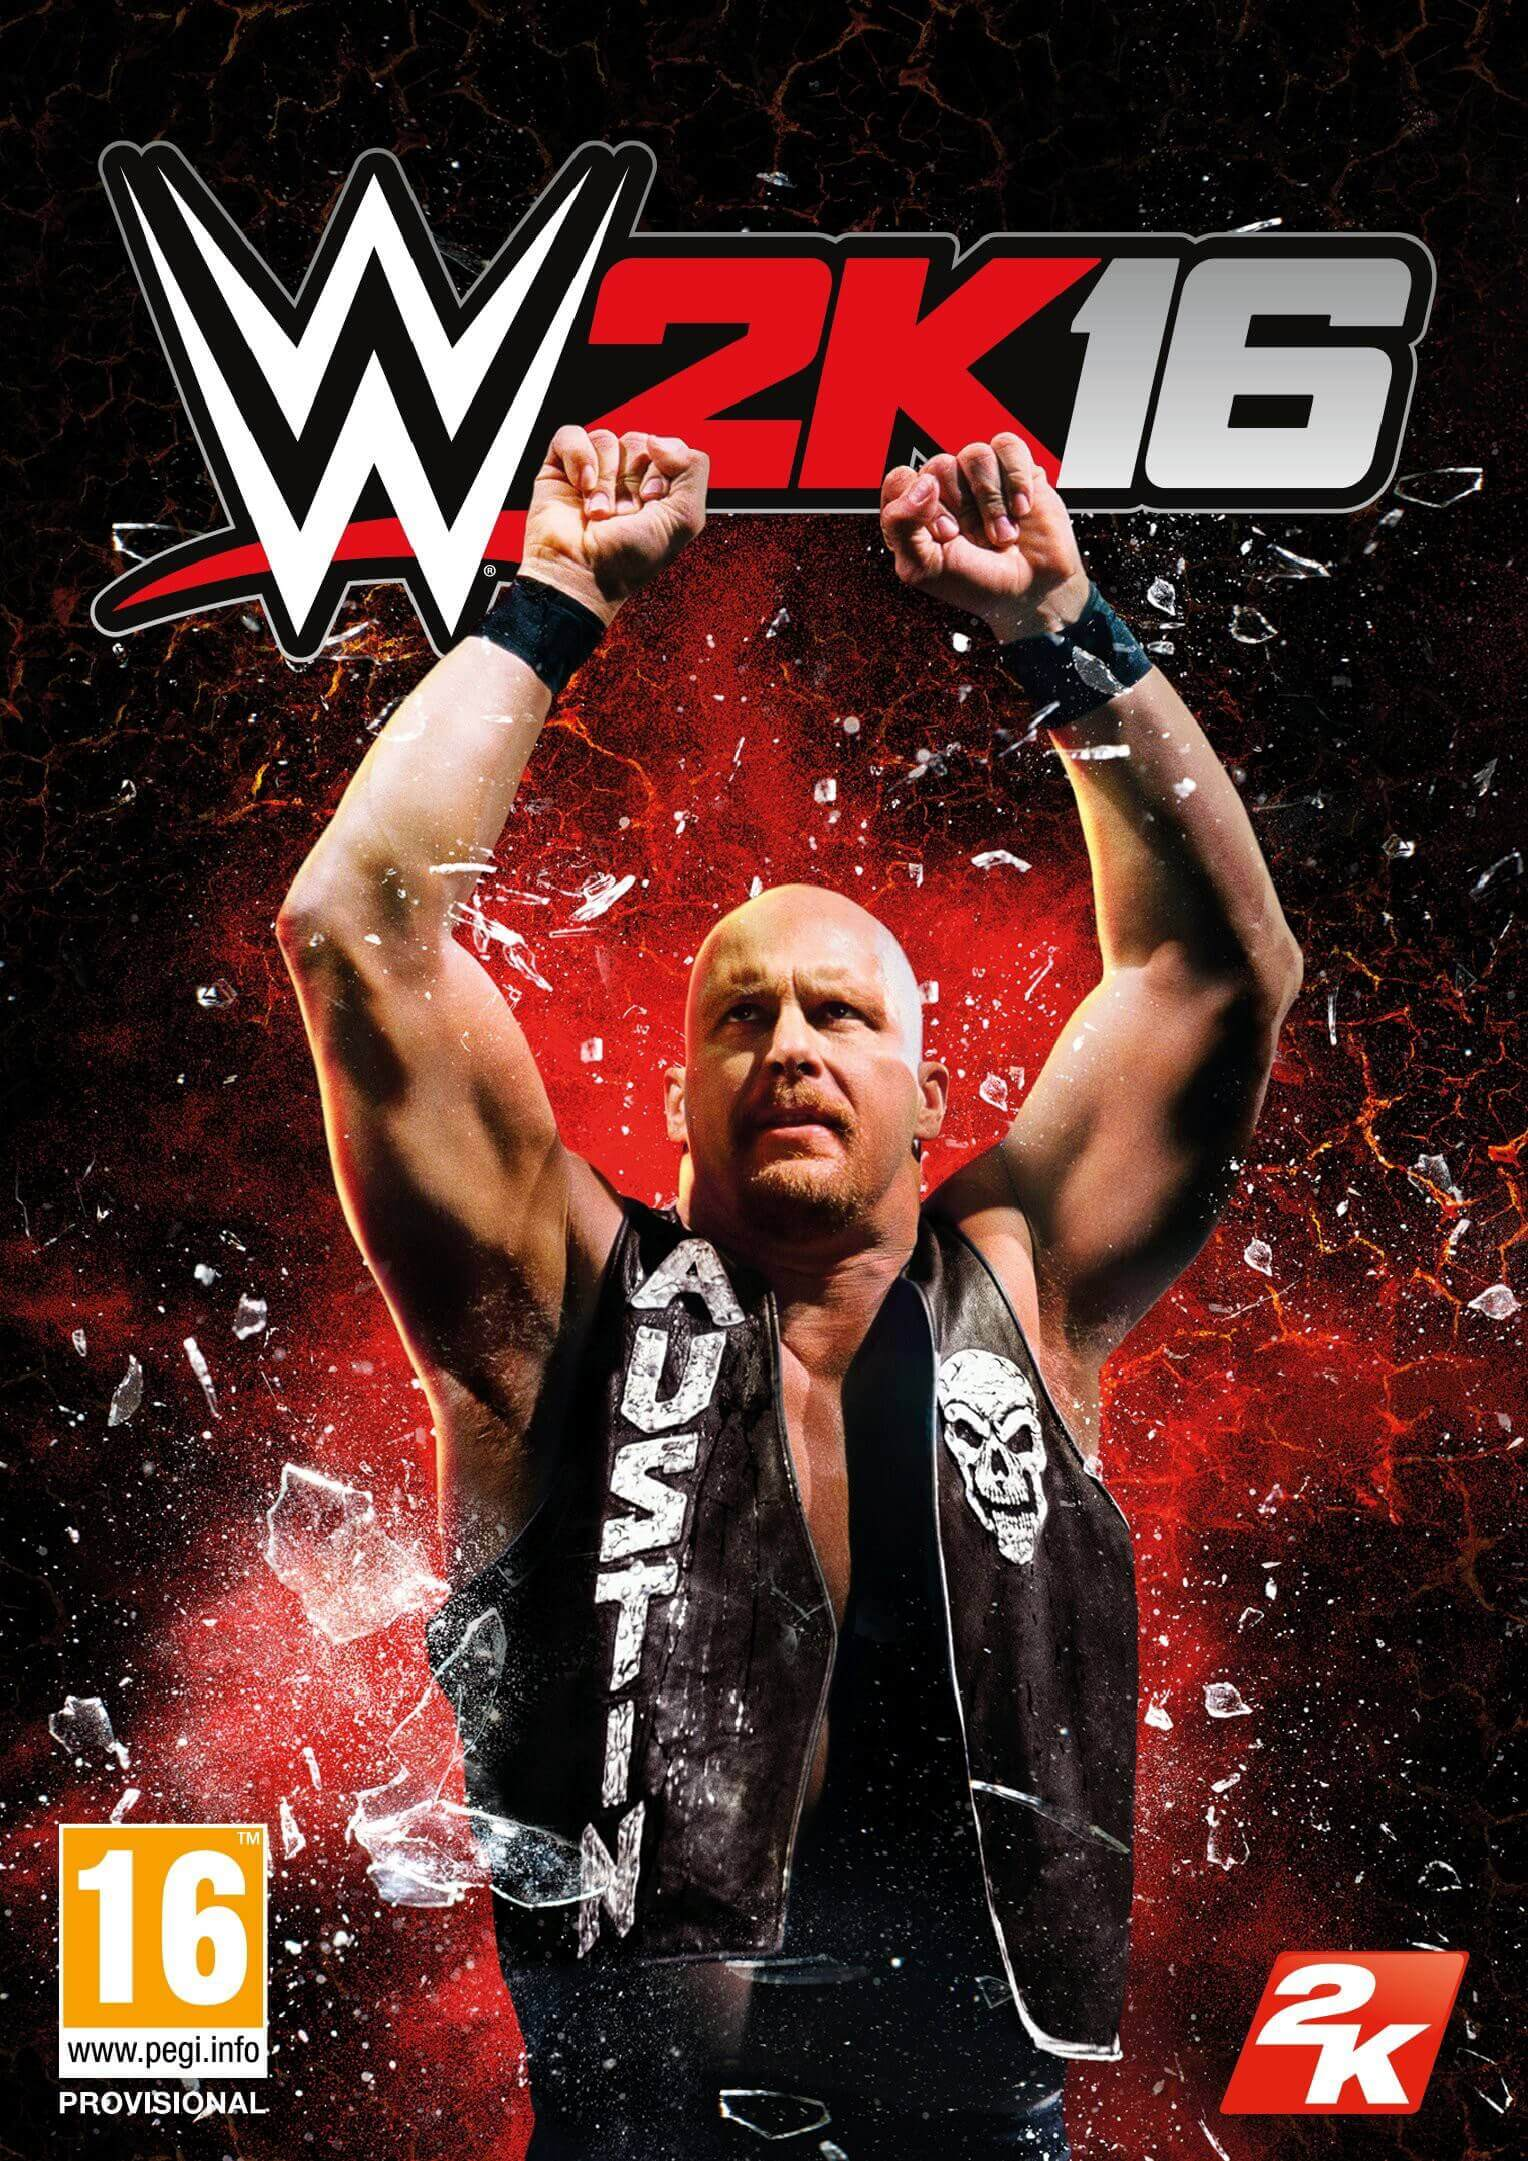 WWE2K16 Download Free Torrent PC + Crack